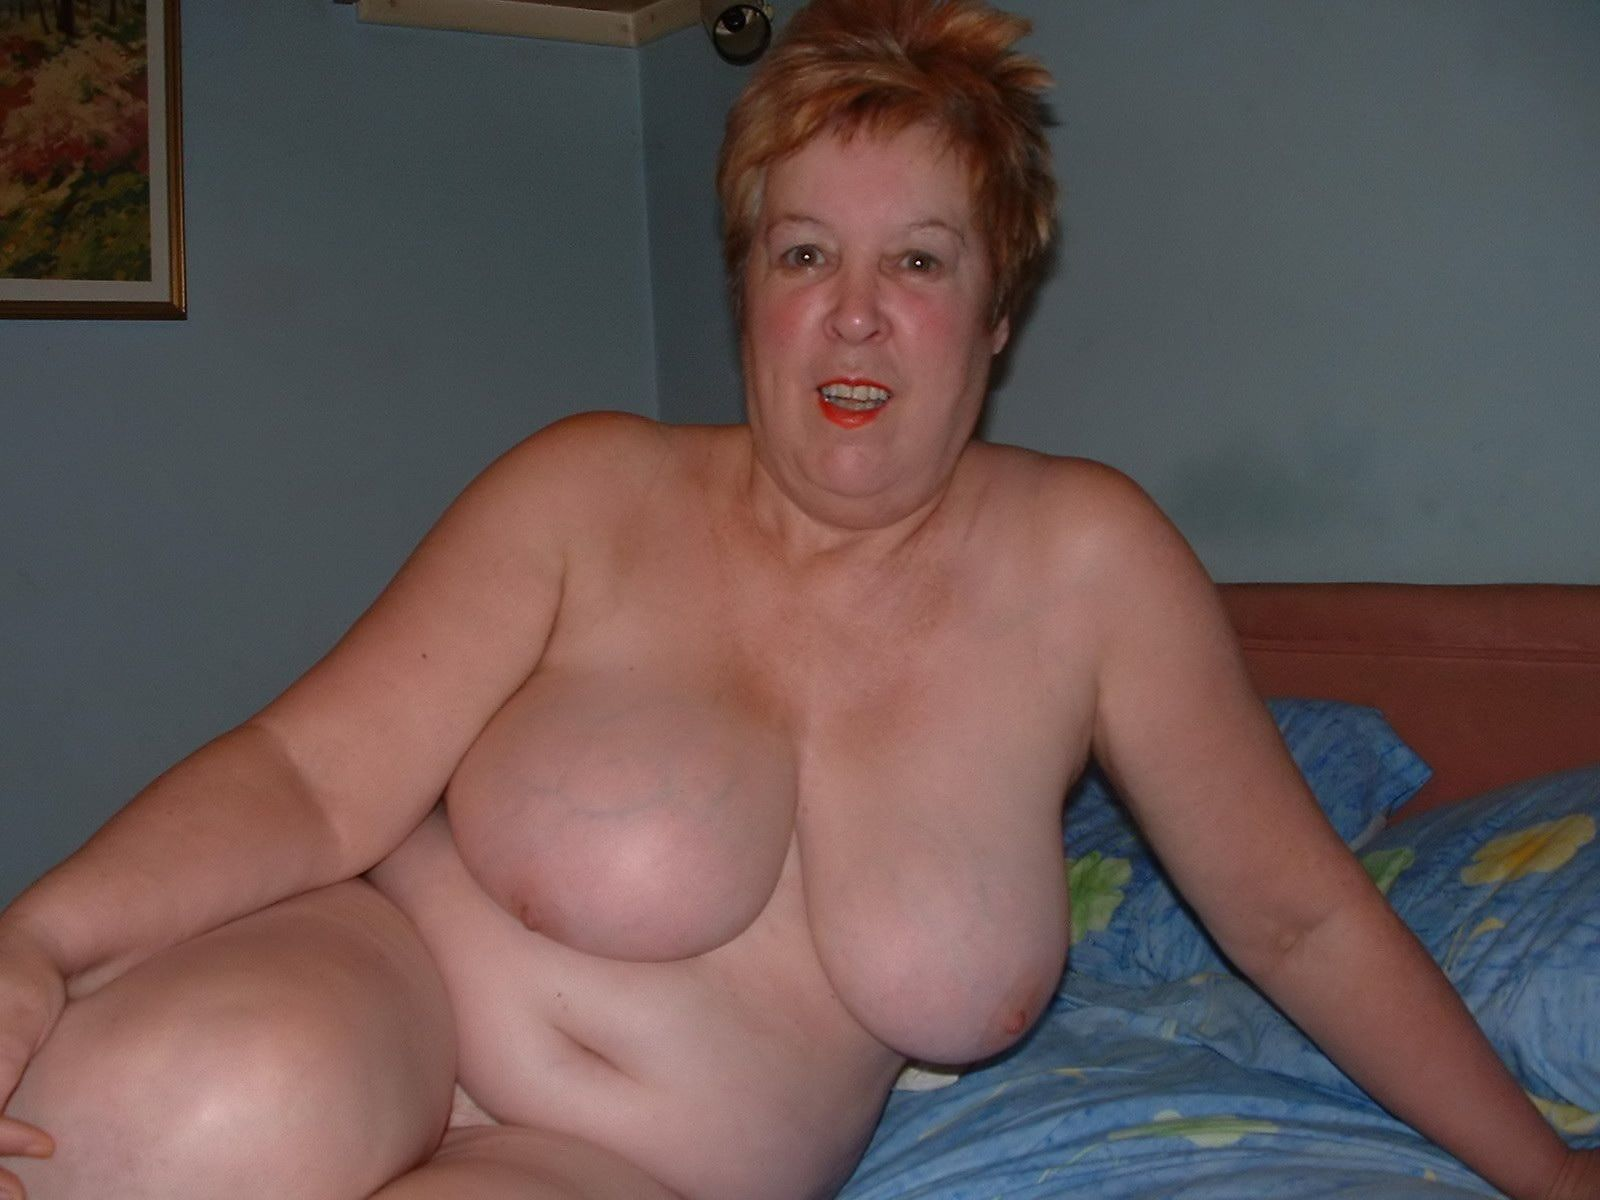 chubby granny naked Blond chubby granny Leila strips naked and shows her hairy ...